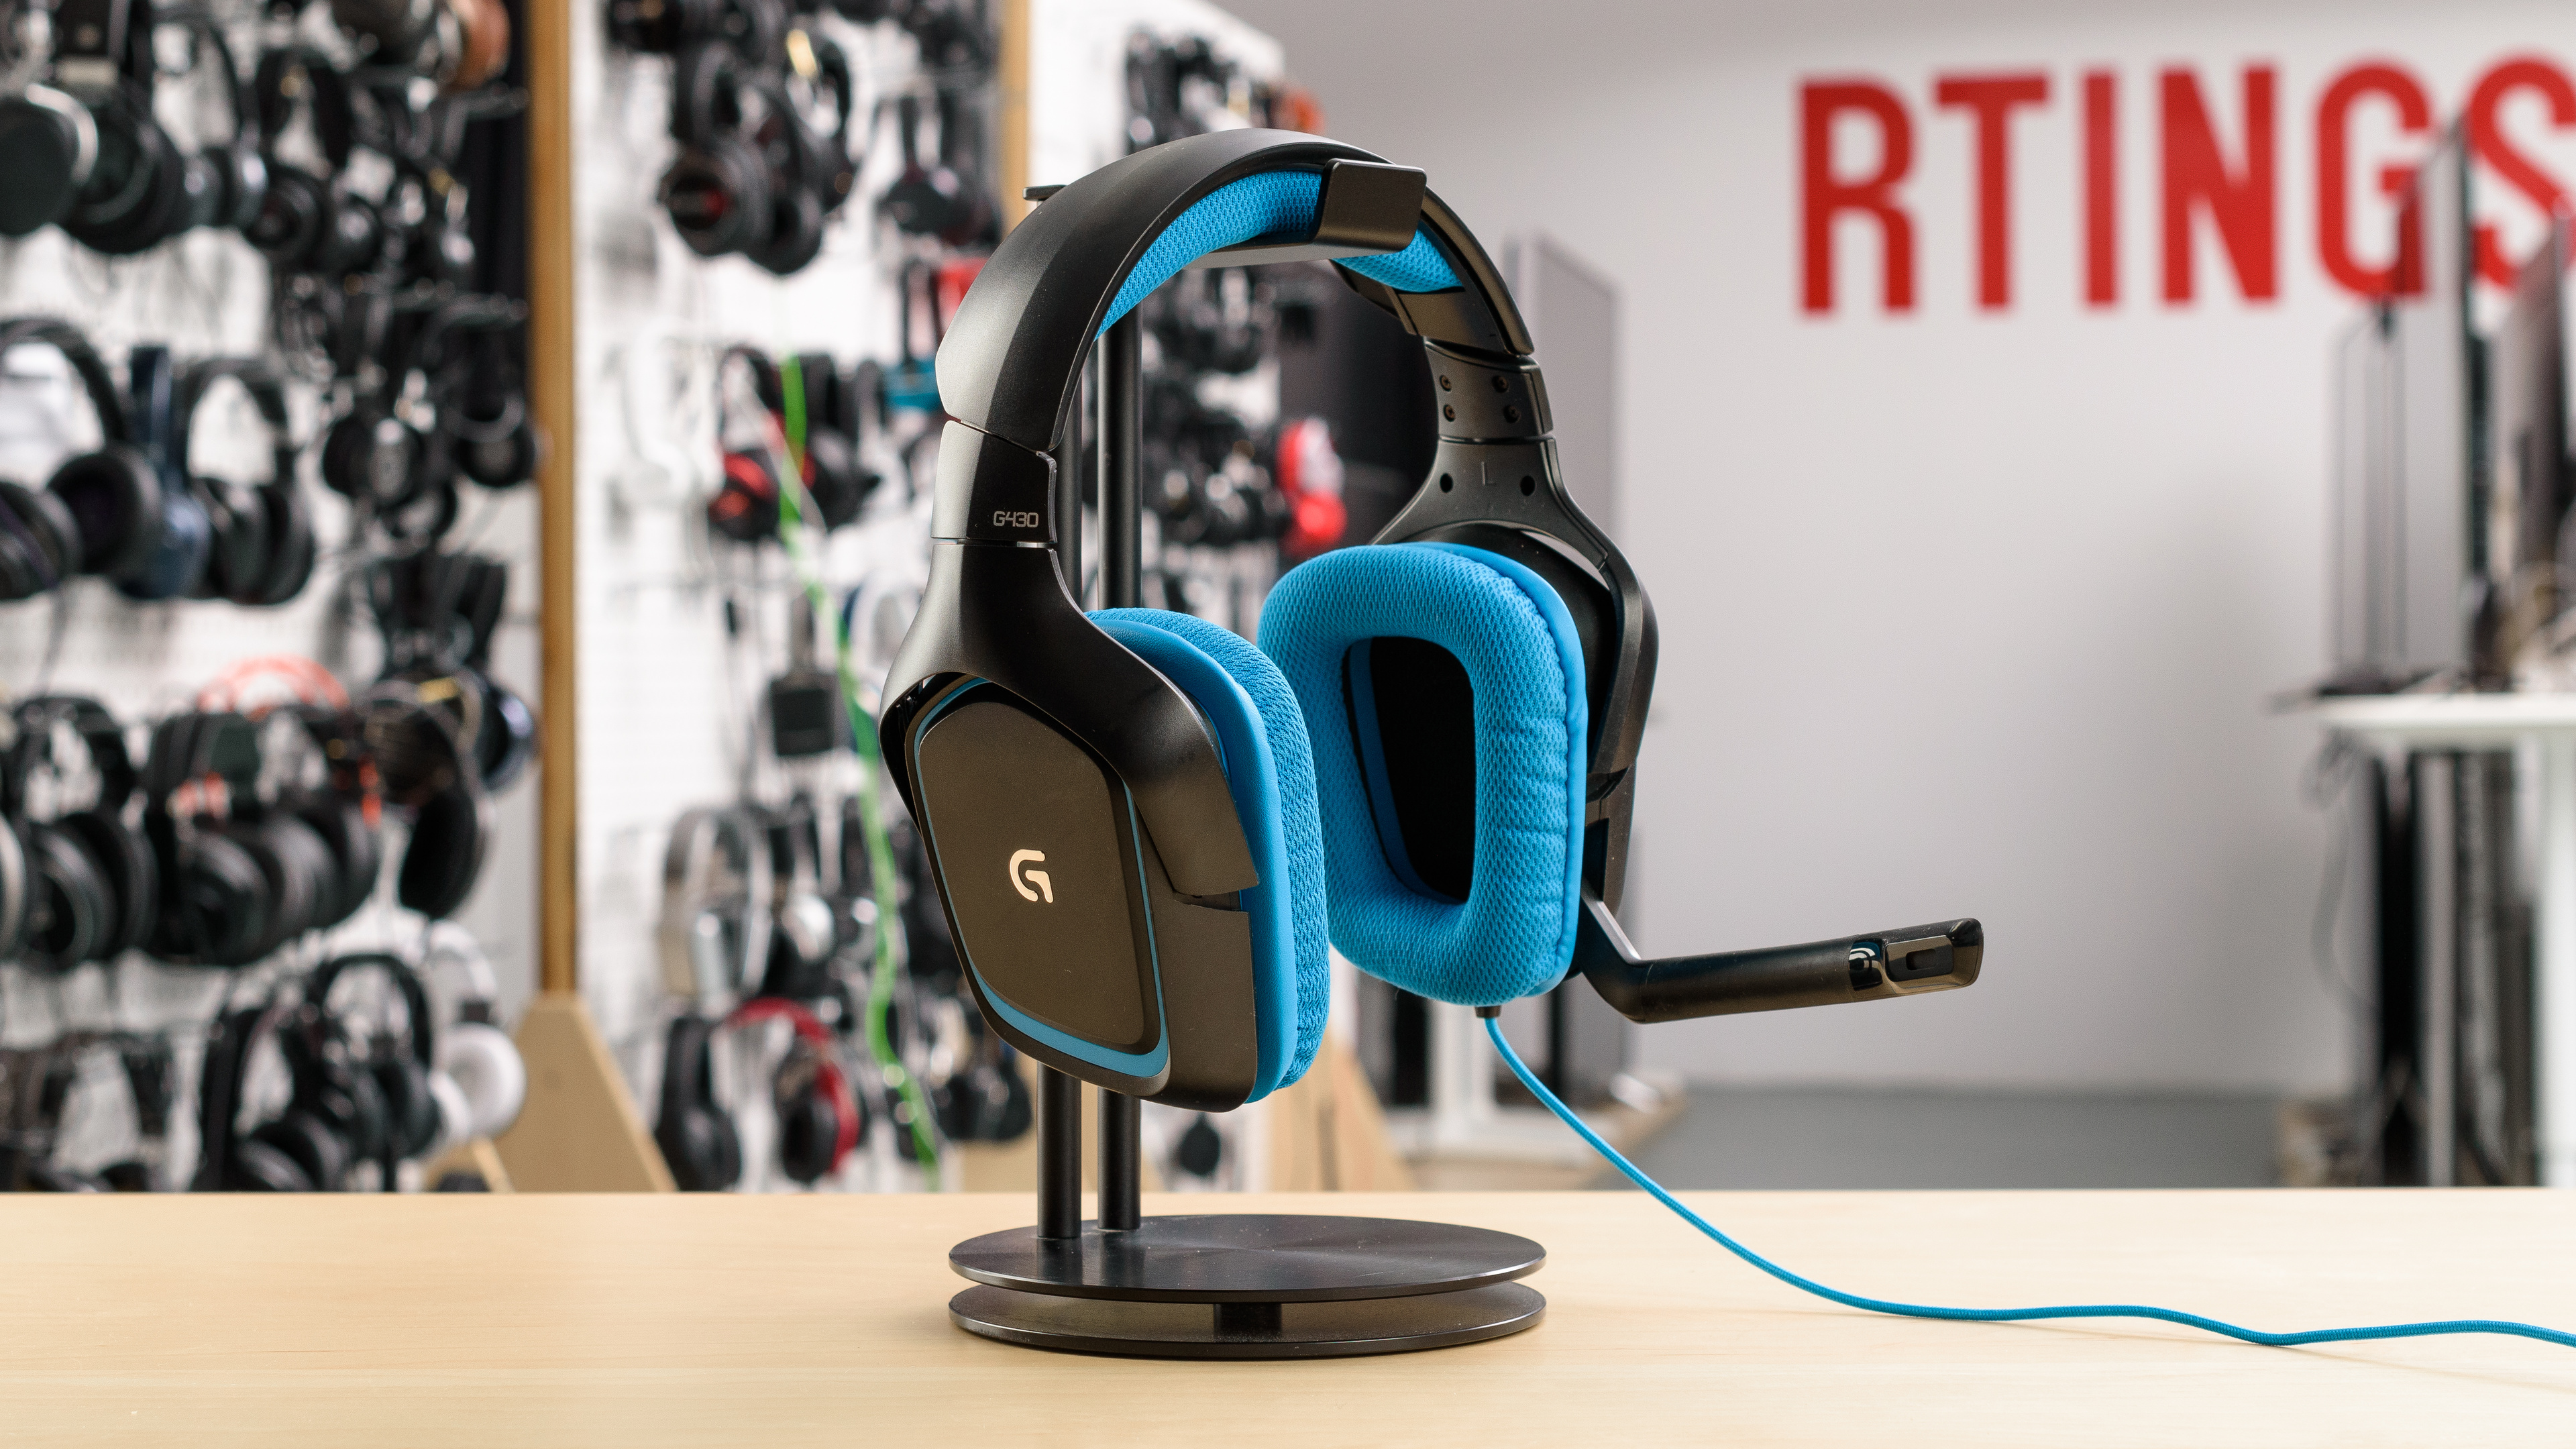 Logitech G430 vs Astro A10 Side-by-Side Comparison - RTINGS.com